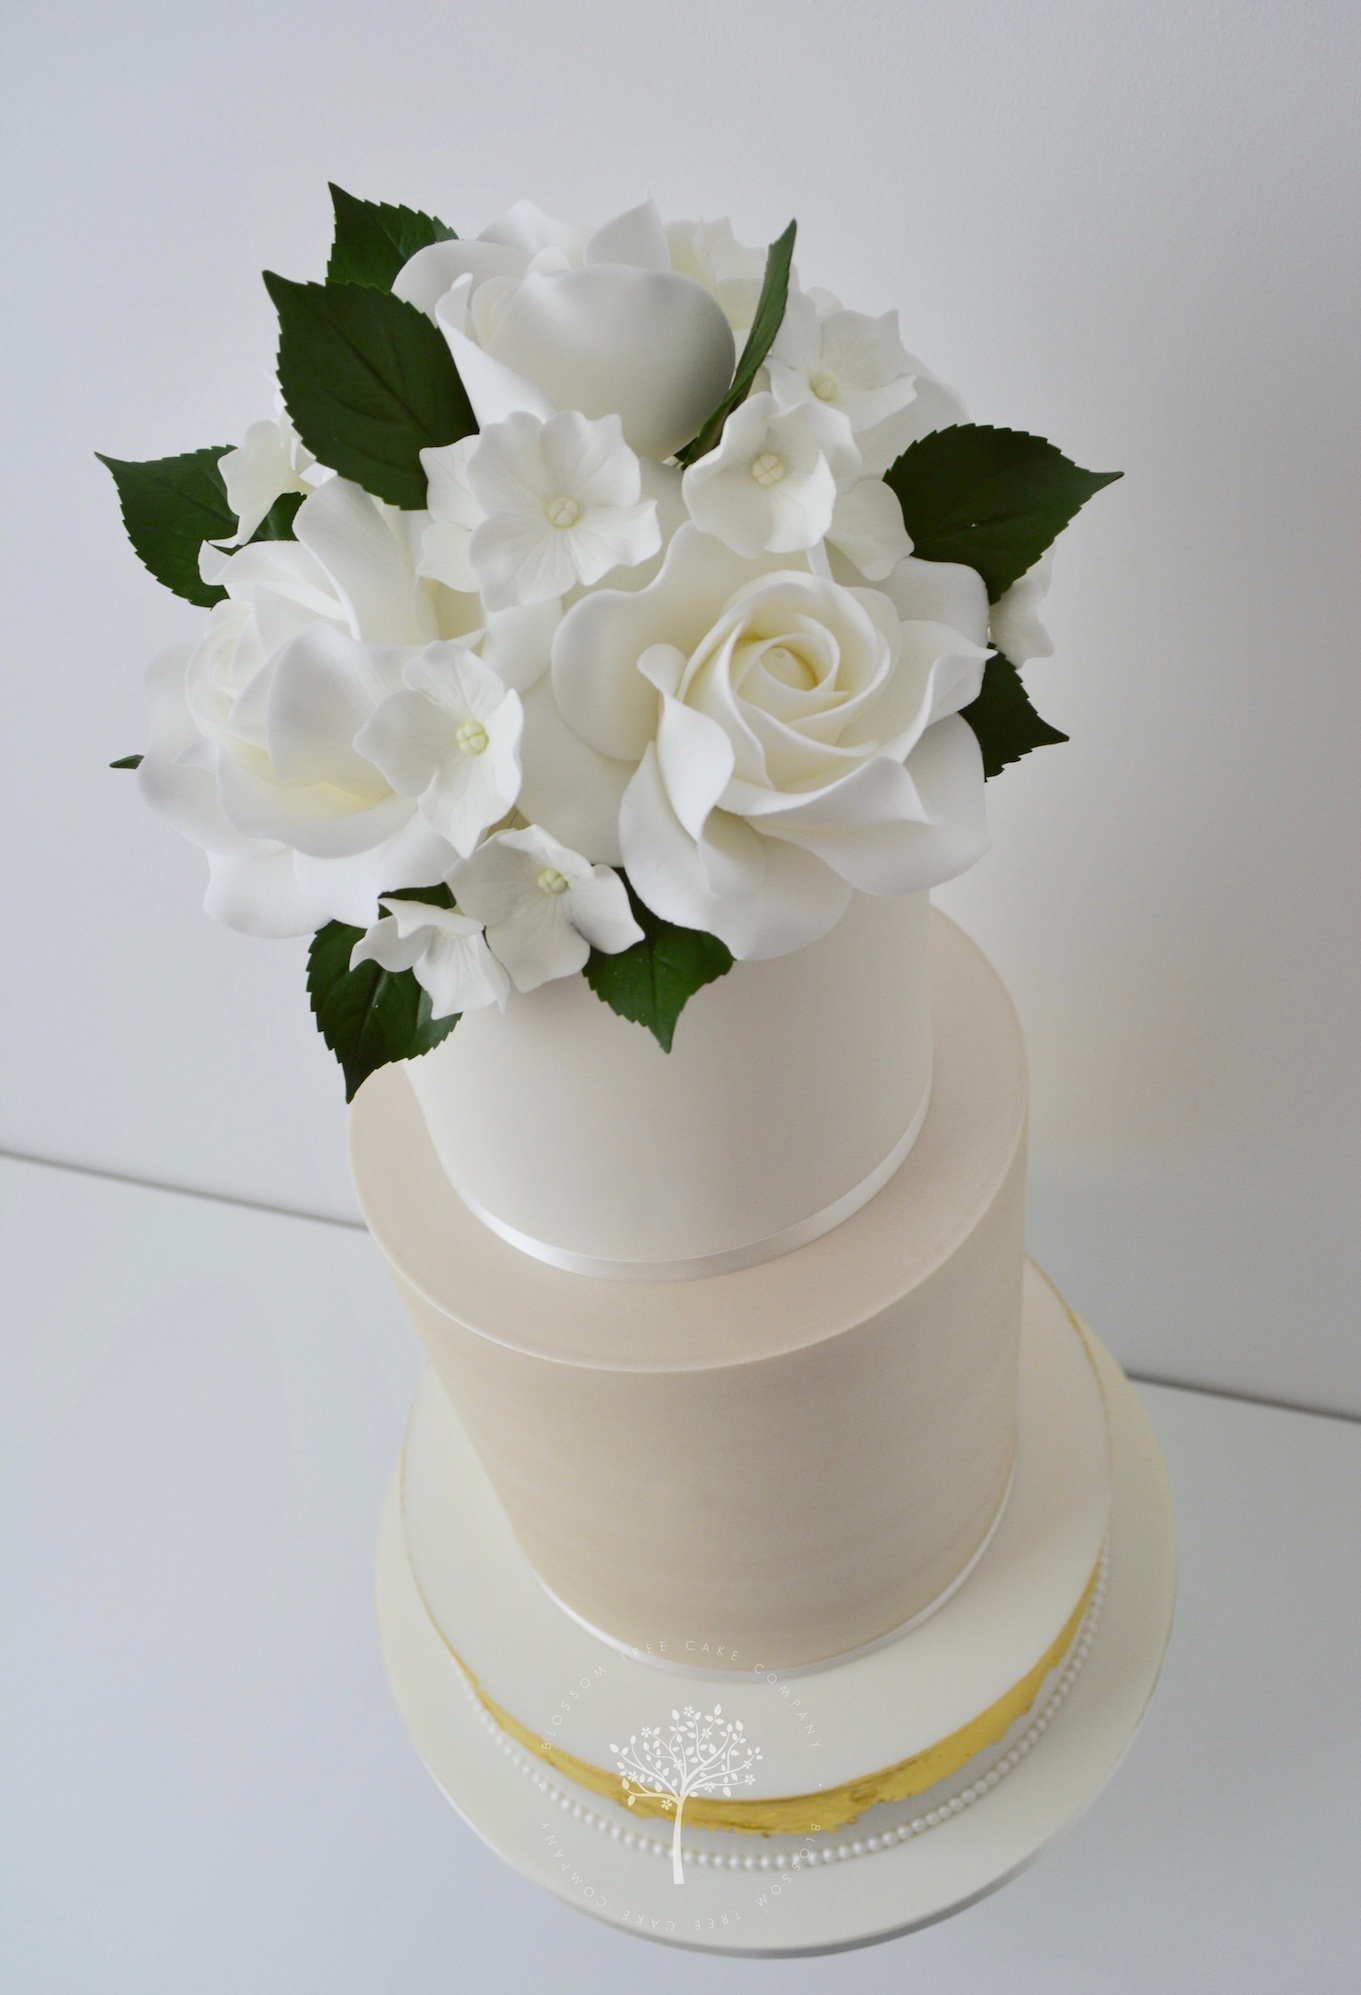 Champagne and White Roses wedding cake by Blossom Tree Cake Company Harrogate North Yorkshire - angle.jpg